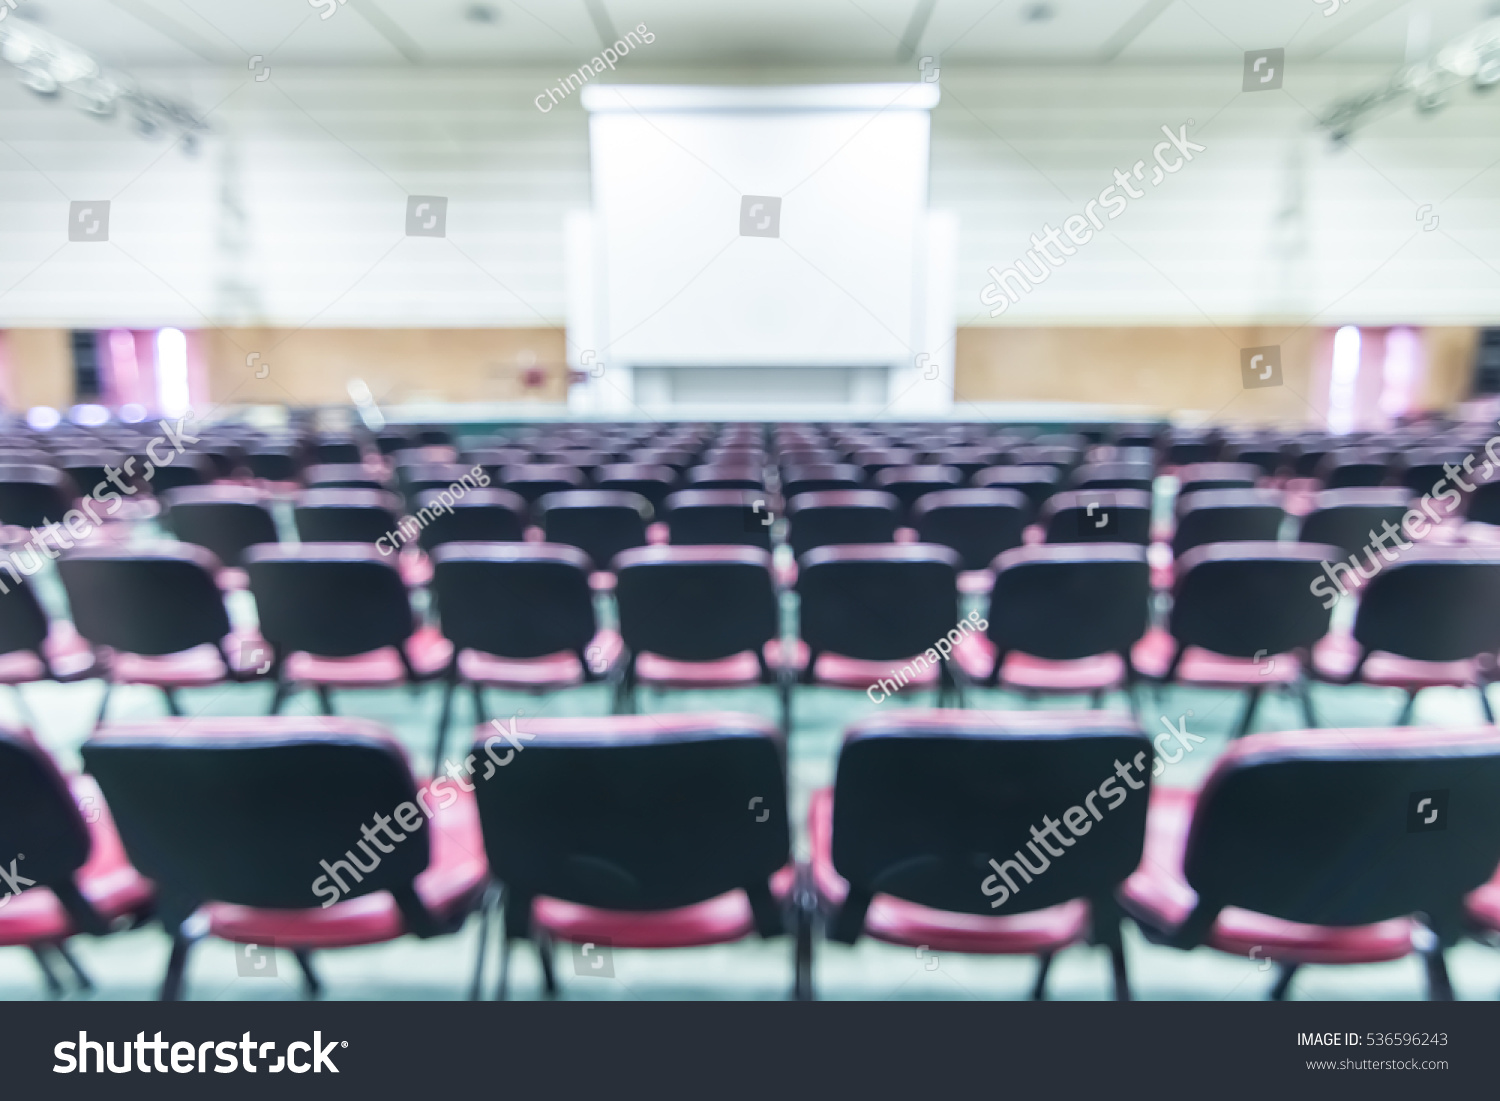 blurred abstract background empty business educational stock photo 536596243